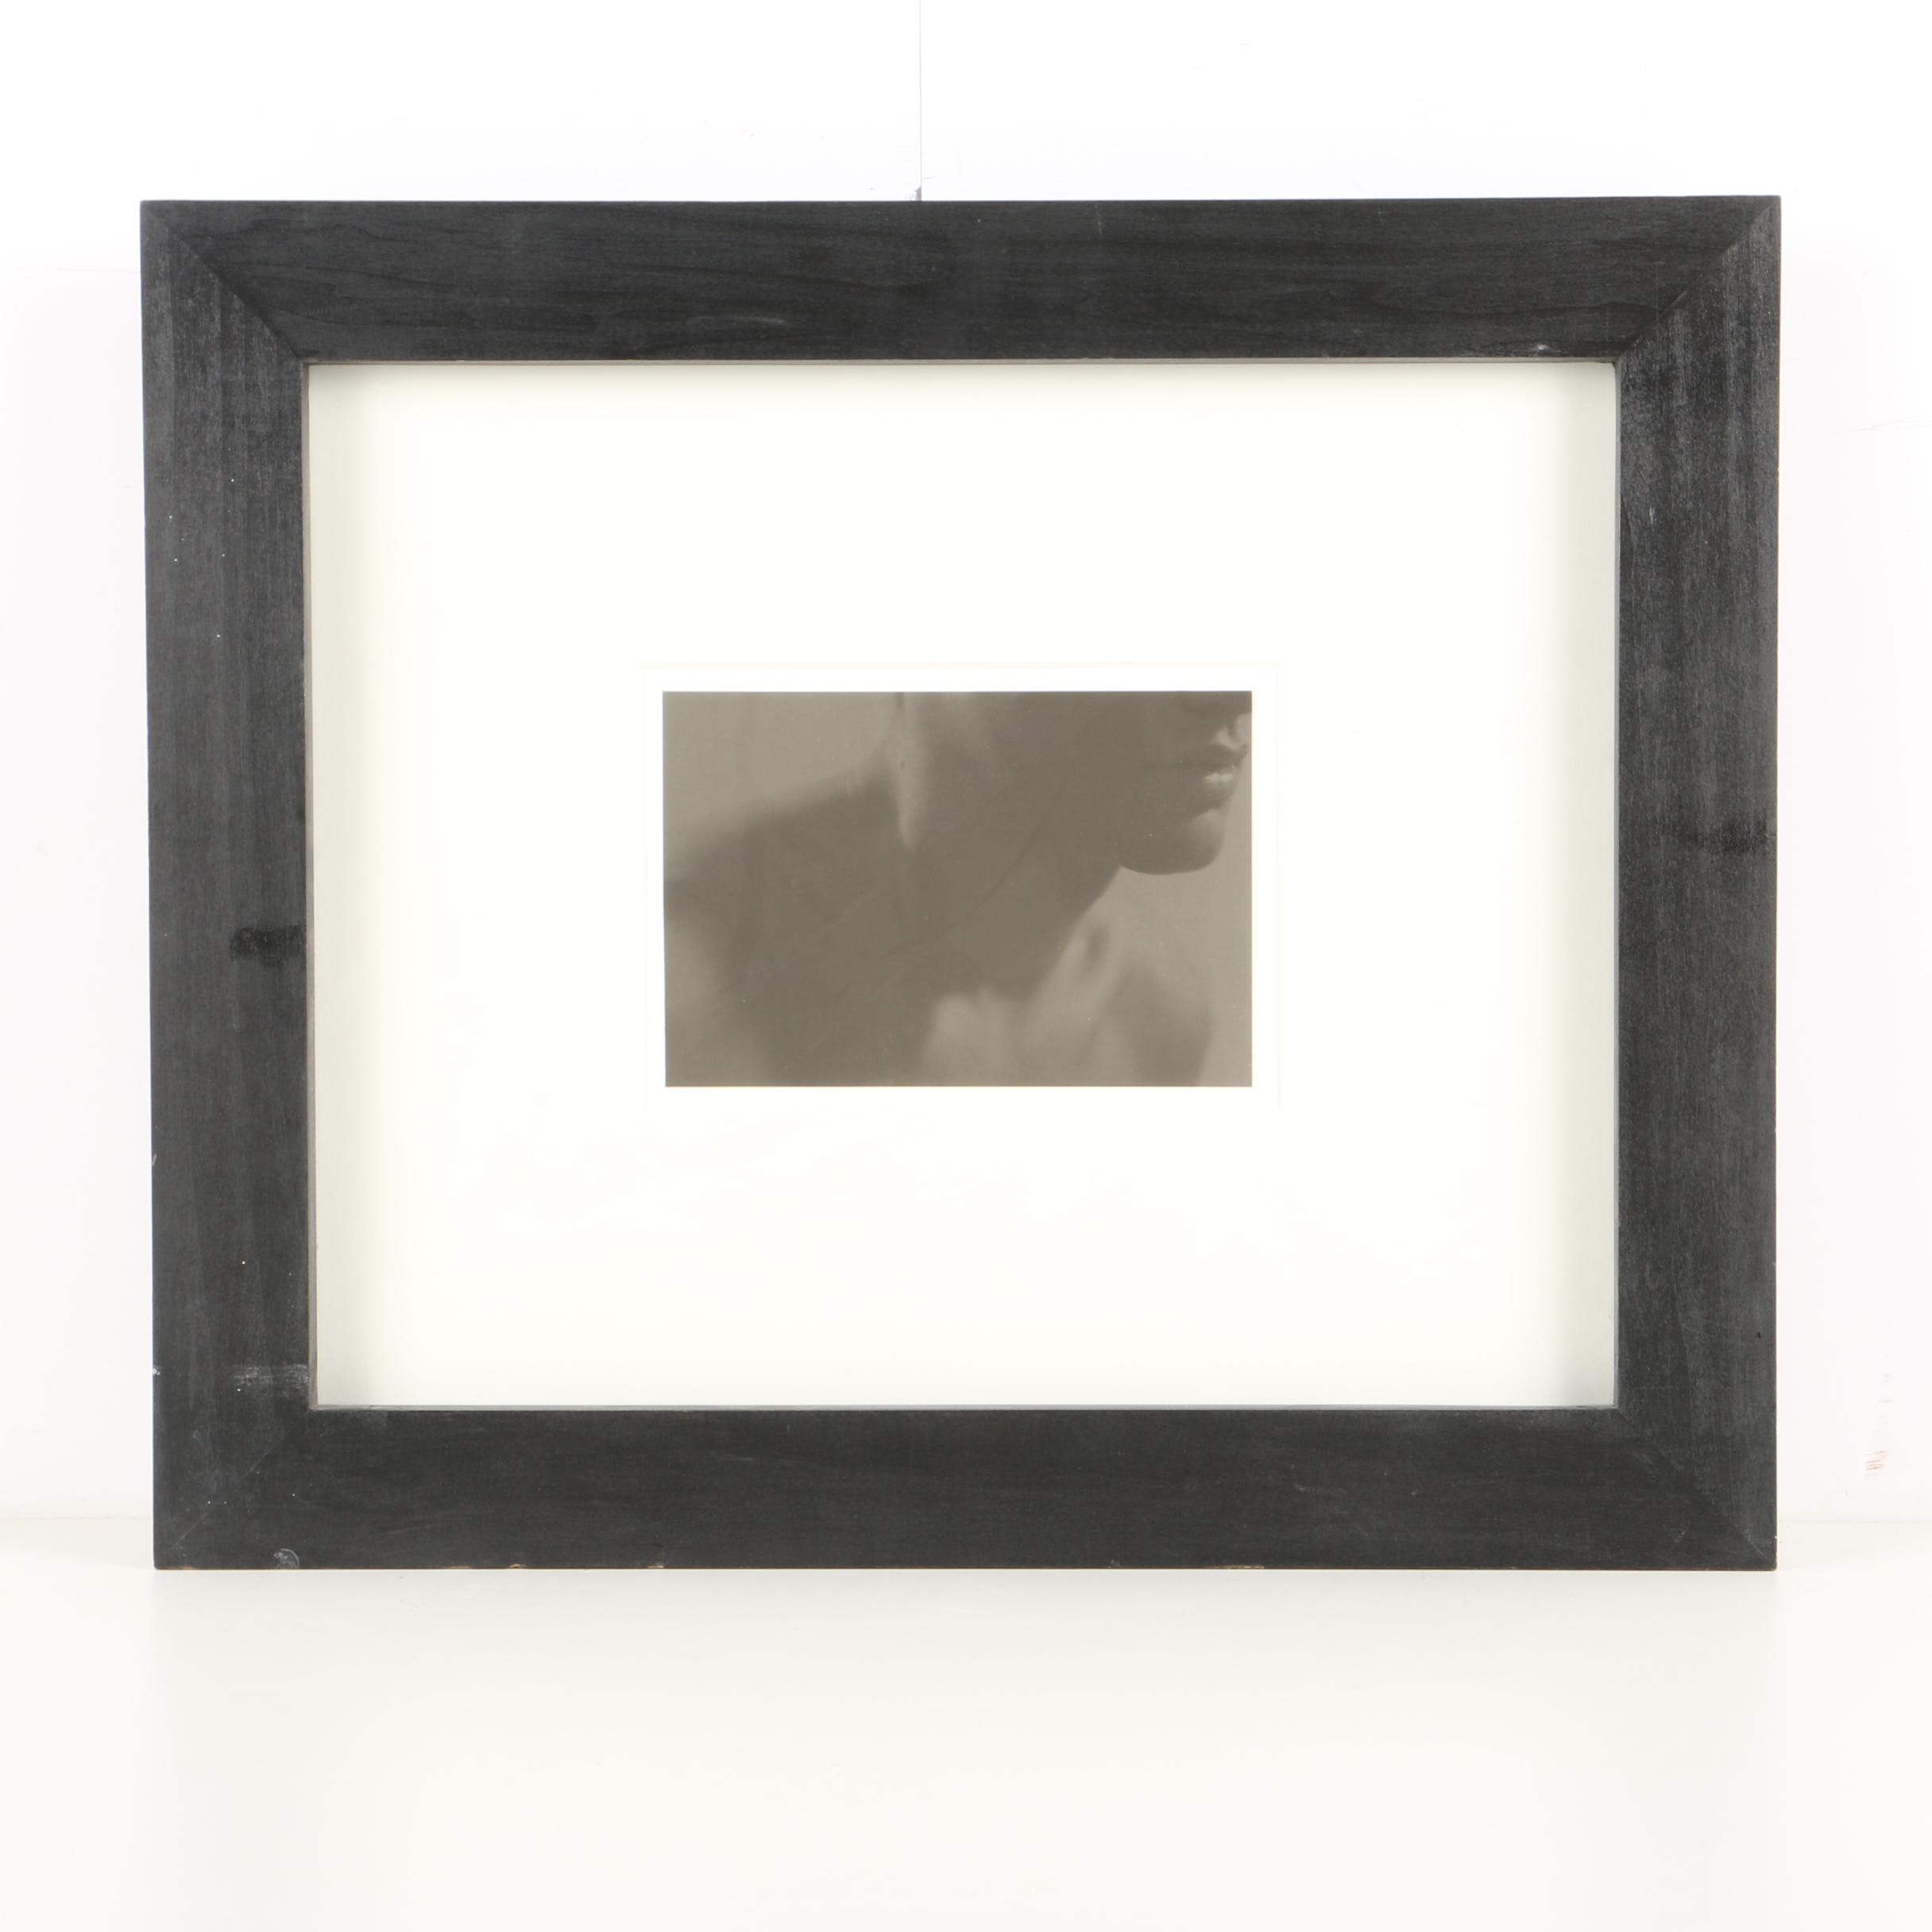 """Anderson & Low Limited Edition Gelatin Silver Photograph """"Lips (Male)"""""""